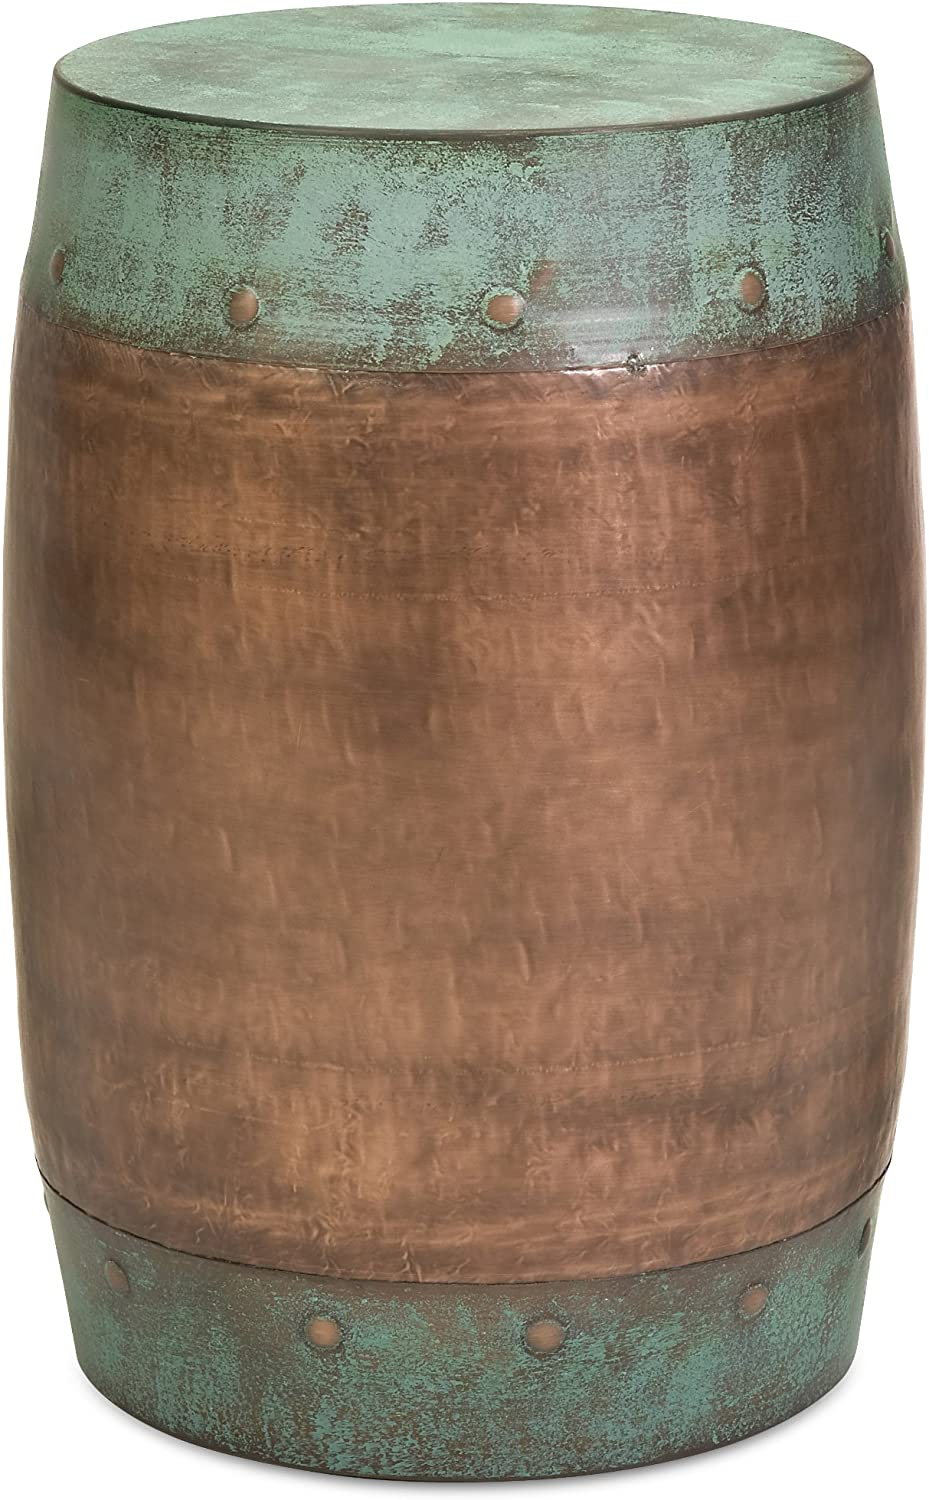 Imax 44195 Rania Copper-Plated Stool – Drum Style Stool, Decorative Accessory, Home Decor. Home Bar Furniture